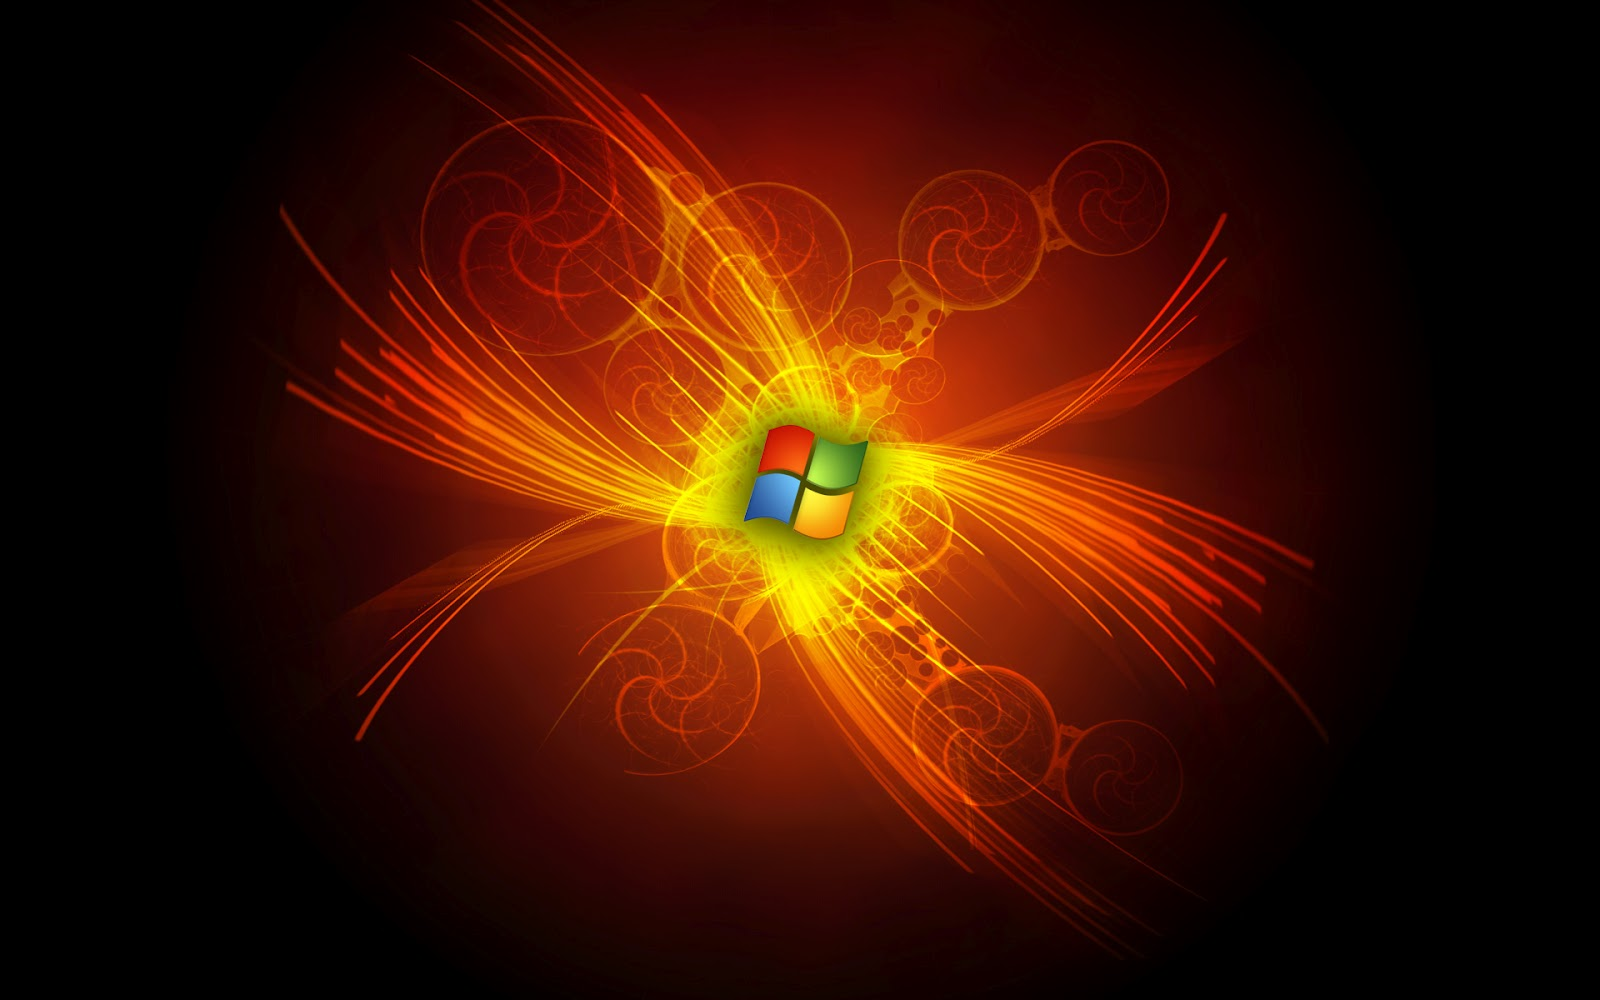 Windows 7 HD Wallpapers Free Download ~ SEO Urdu Pakistan | Blogging Techniques | Latest Jobs in ...